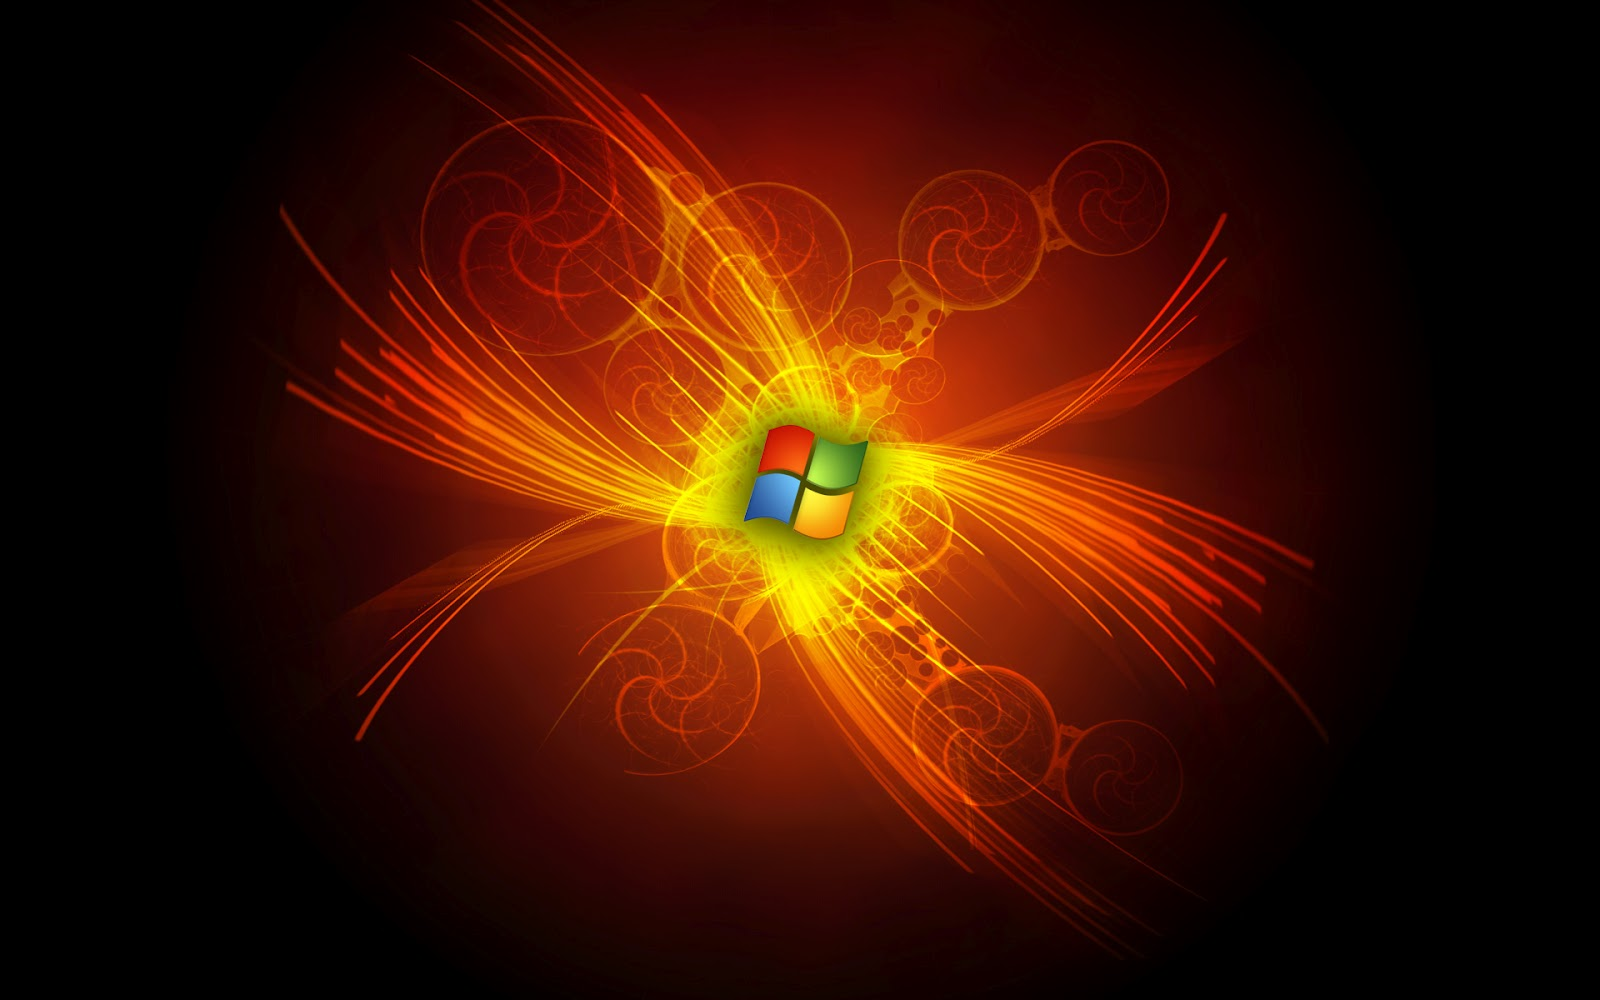 Windows 7 HD Wallpapers Free Download ~ SEO Urdu Pakistan | Blogging Techniques | Latest Jobs in ...